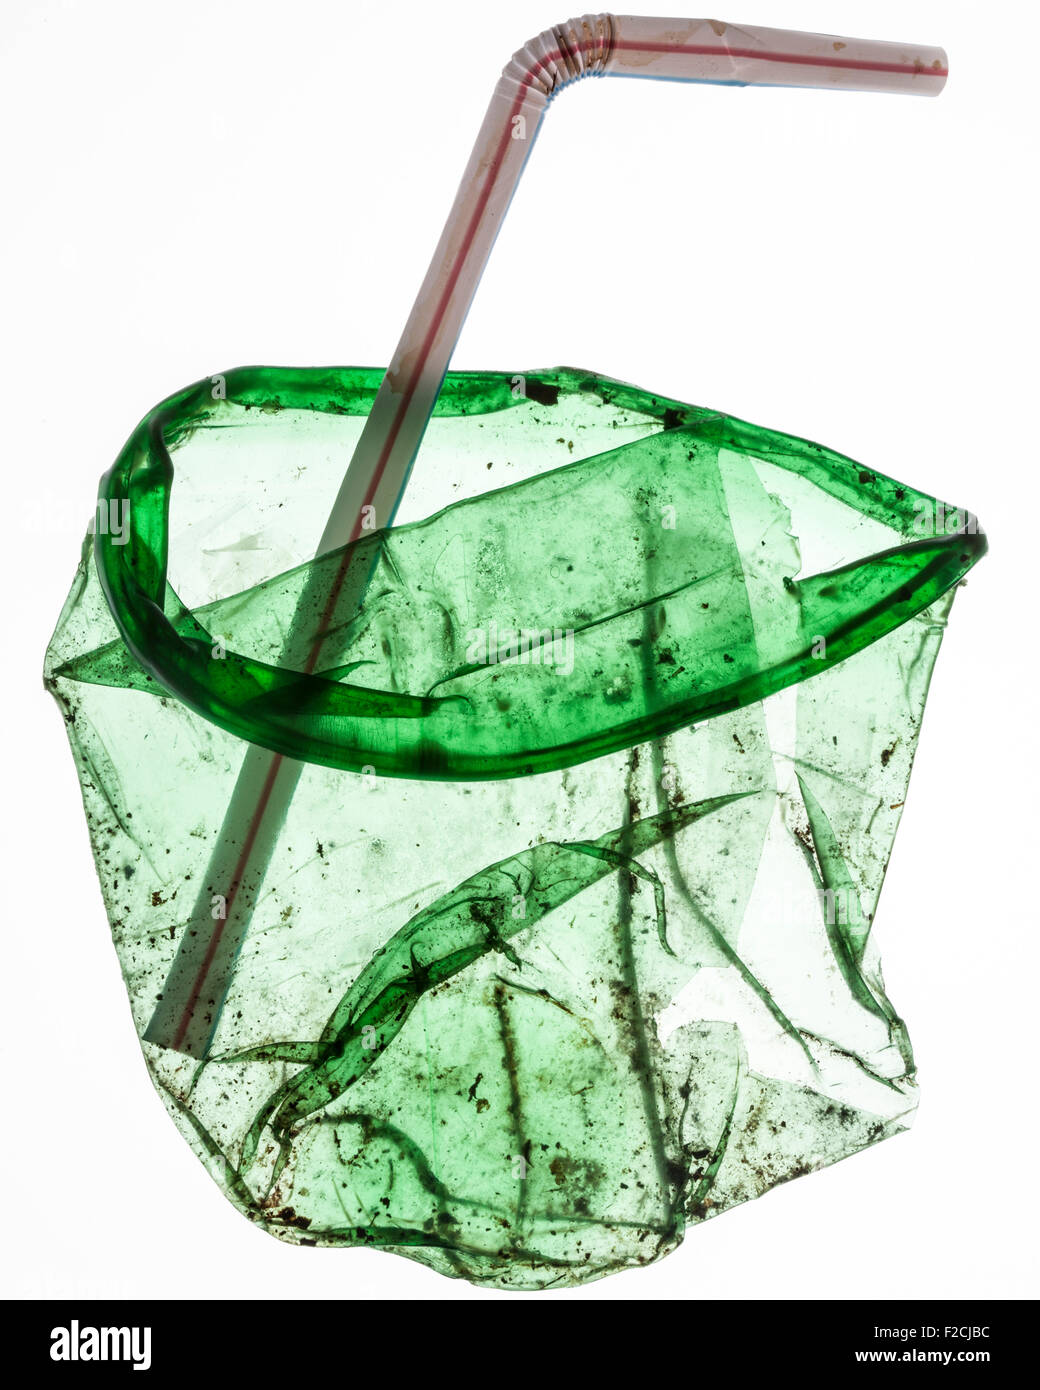 flattened, dirty green translucent plastic cup with bent straw - Stock Image